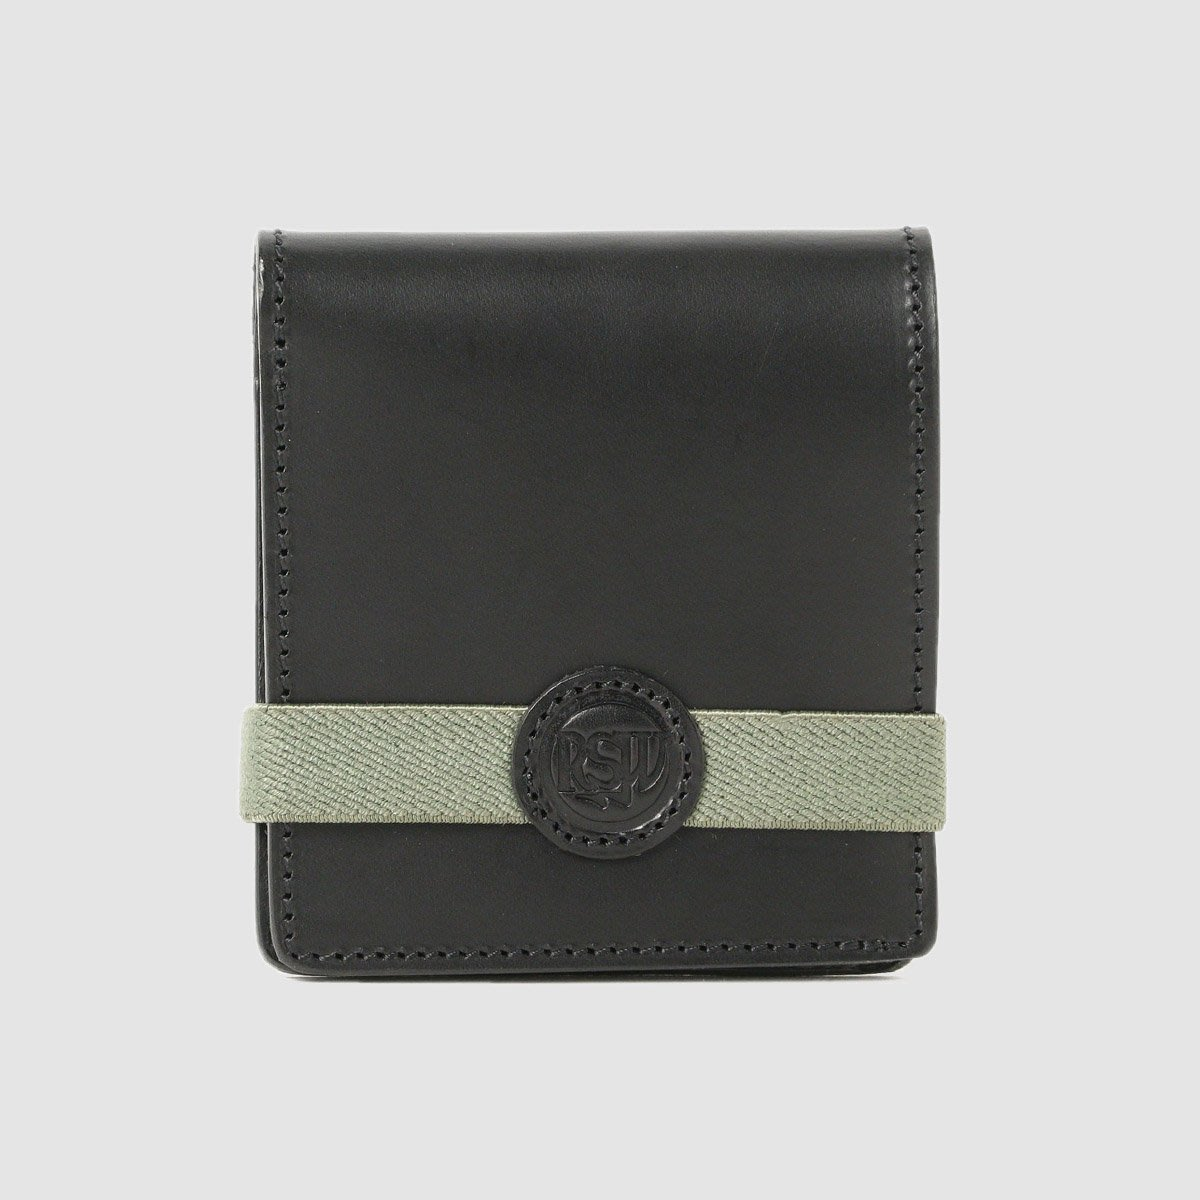 日本代購 ROCK STEADY RSW RUBBER WALLET(Mona)